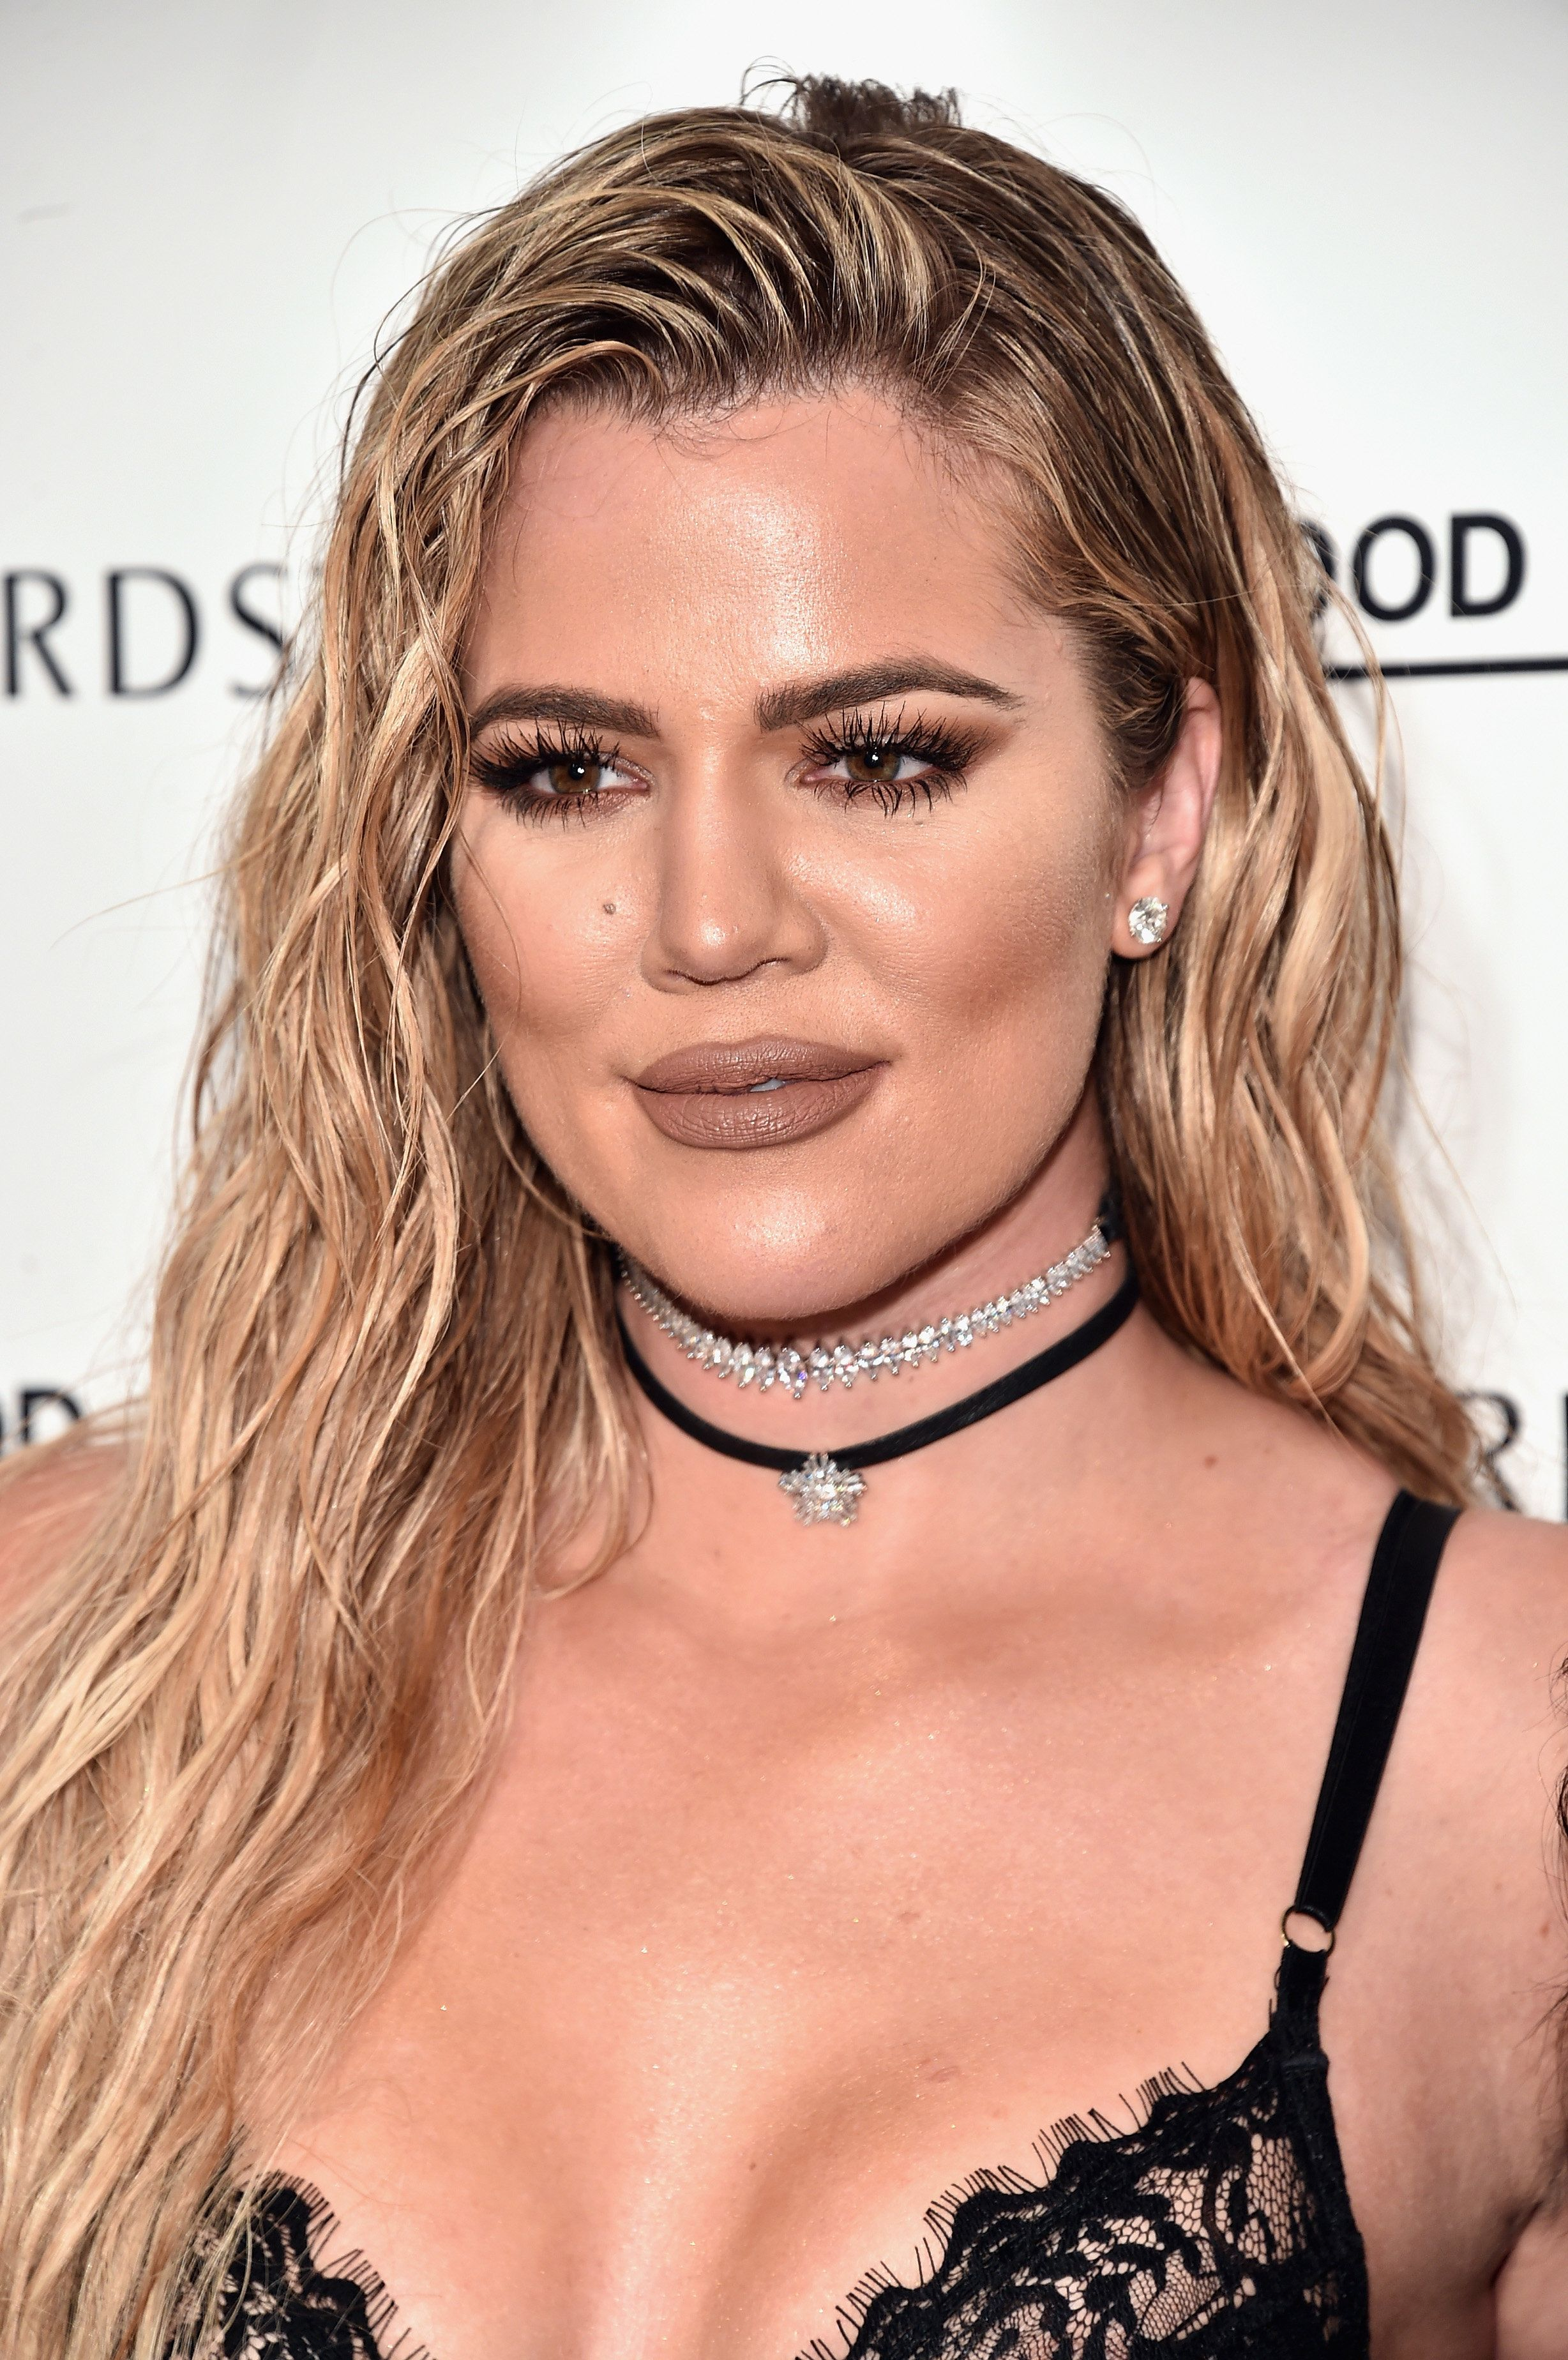 LOS ANGELES, CA - OCTOBER 18:  Khloe Kardashian attends Khloe Kardashian Good American Launch Event at Nordstrom at the Grove on October 18, 2016 in Los Angeles, California.  (Photo by Alberto E. Rodriguez/Getty Images)